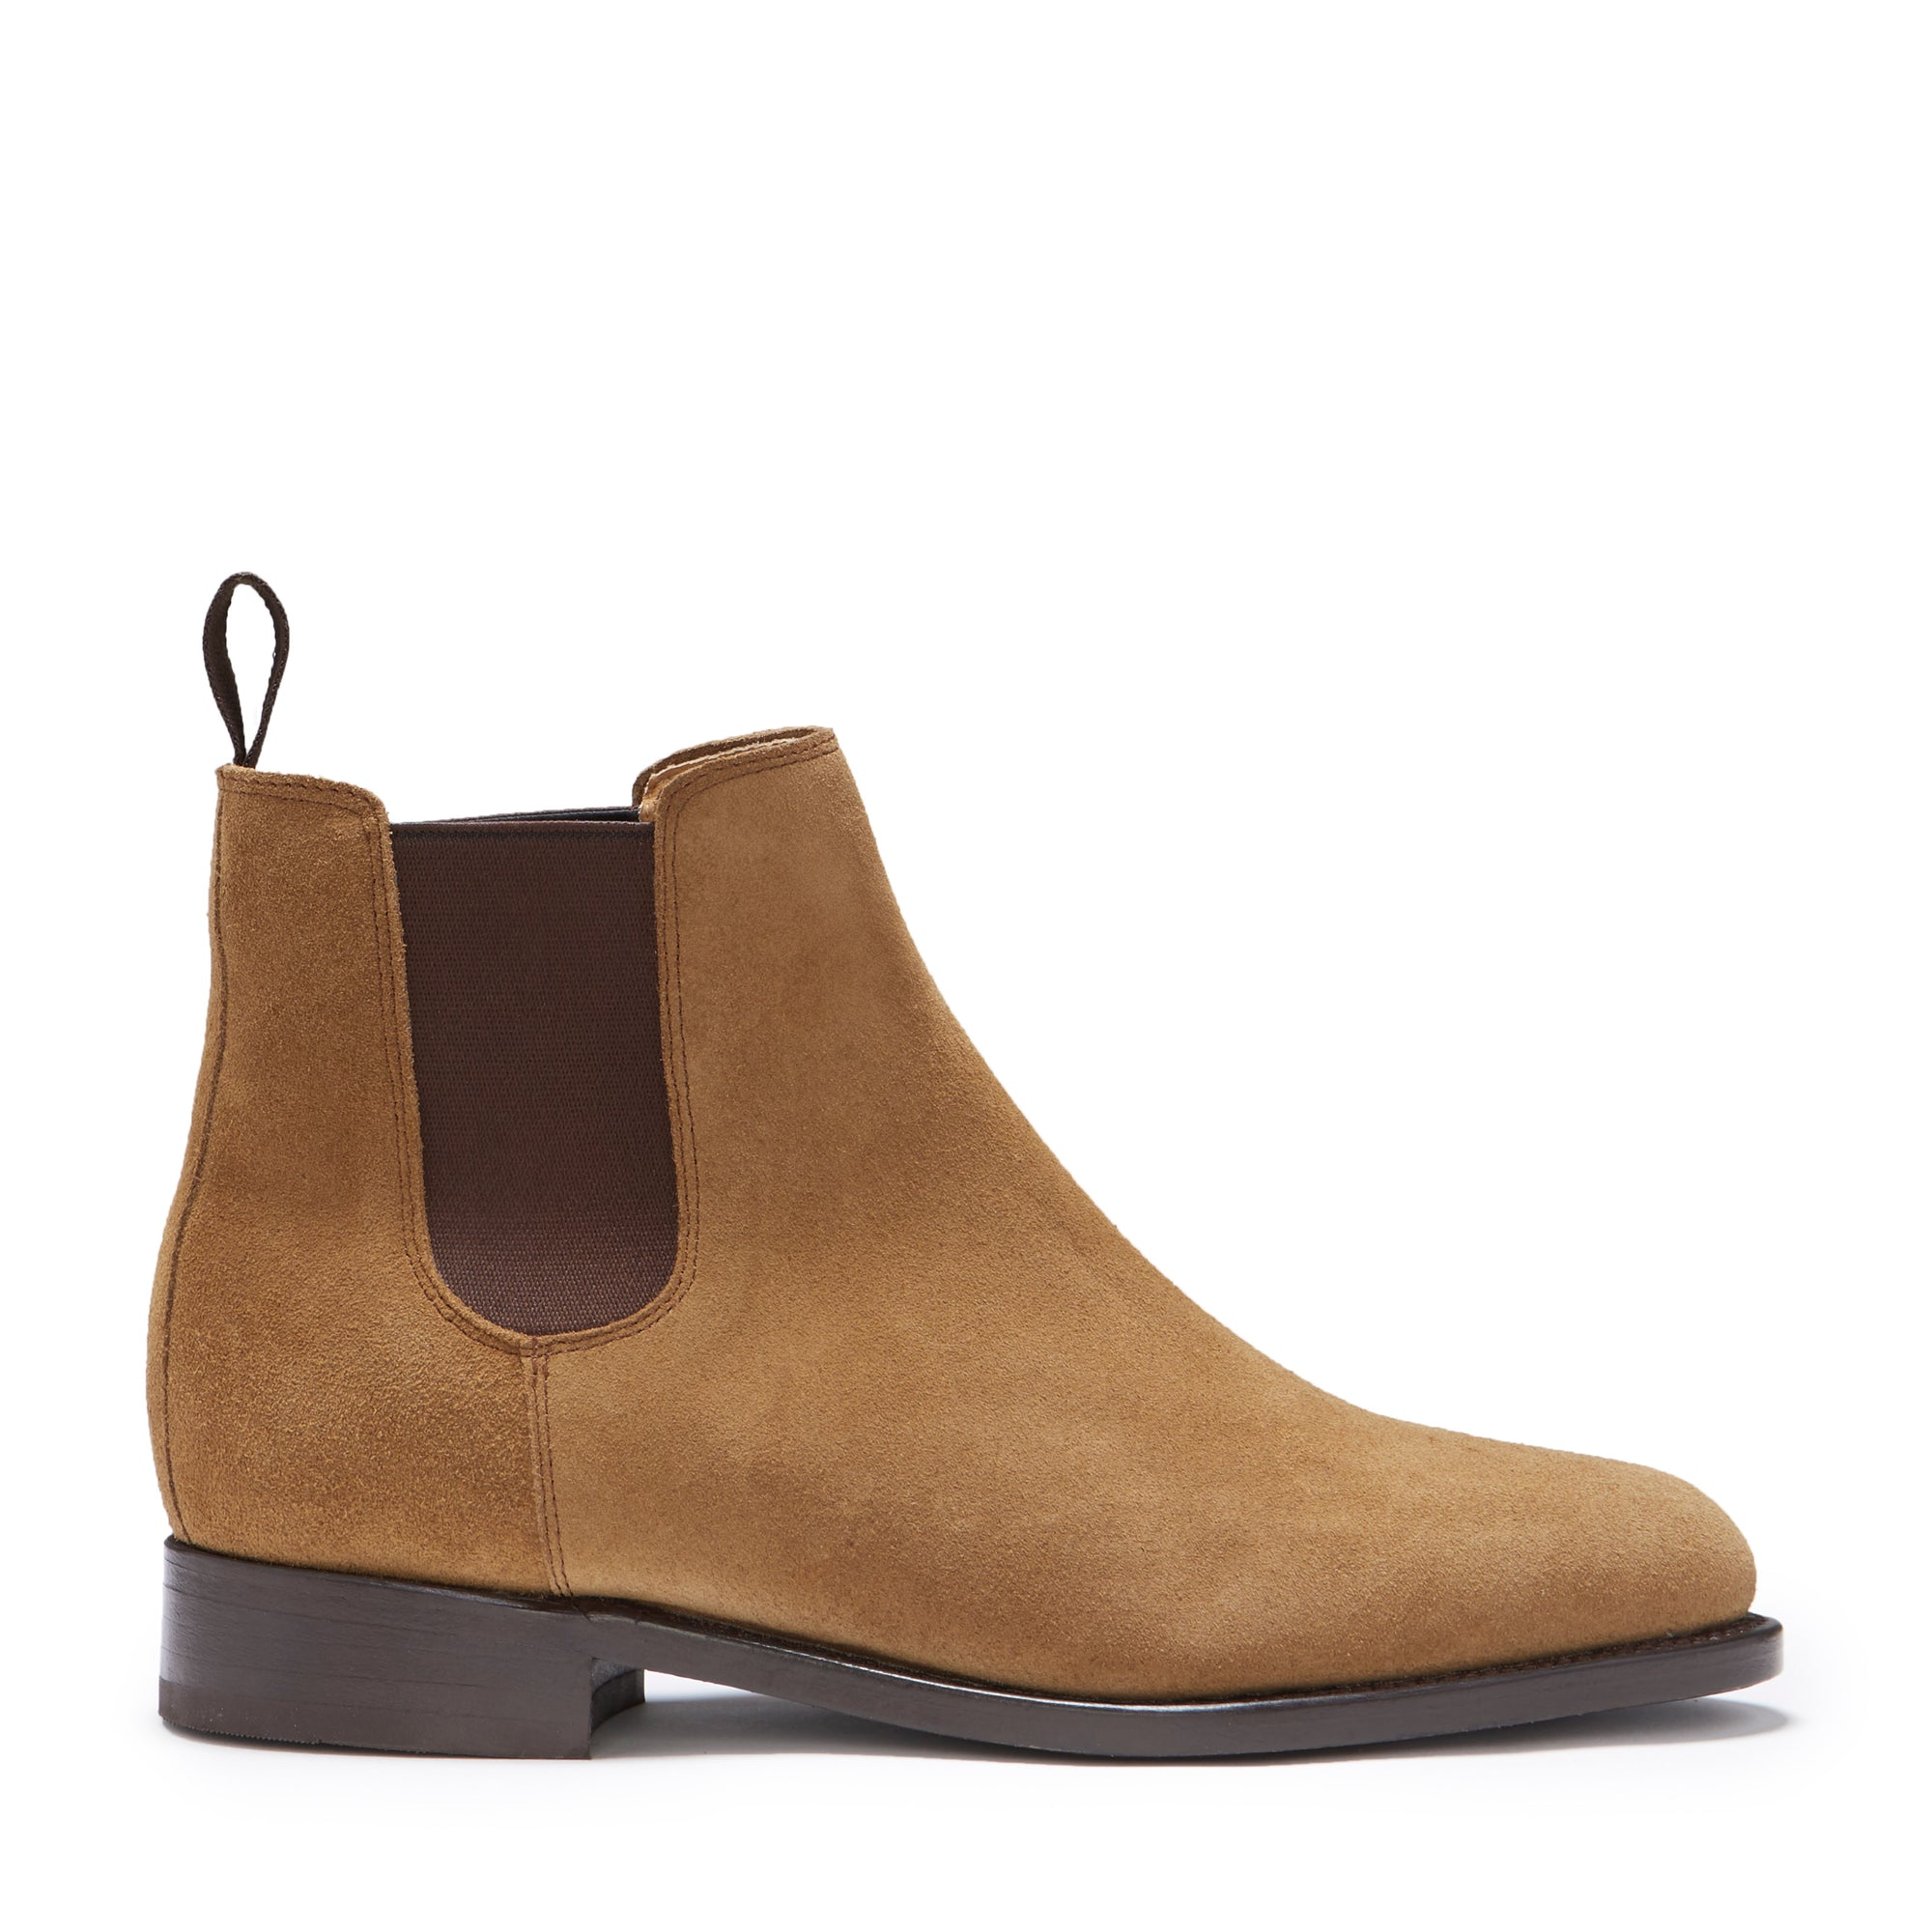 Women's Tobacco Suede Chelsea Boots, Welted Leather Sole